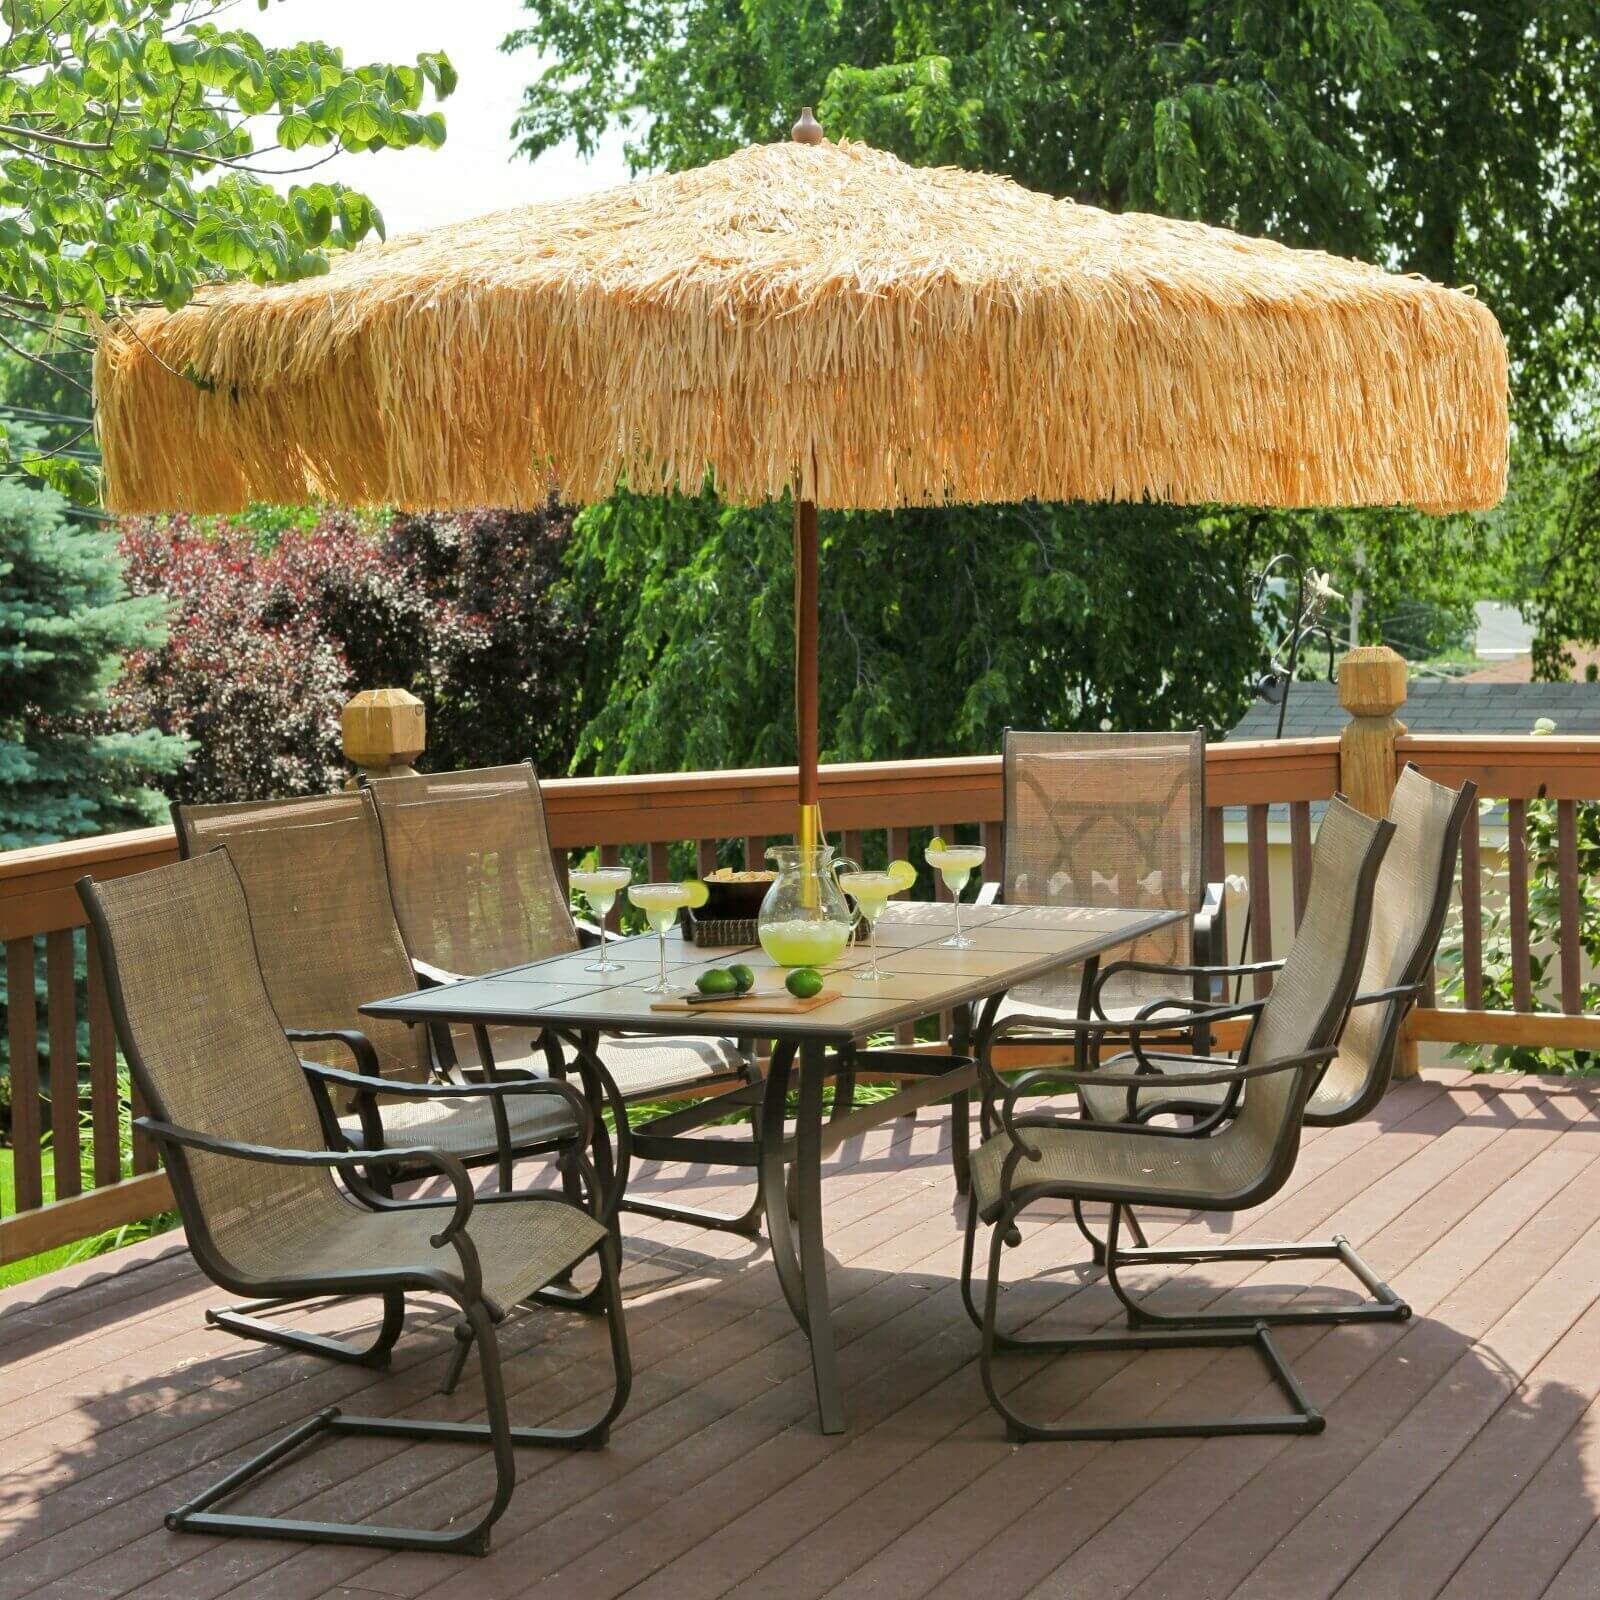 PATIO SET DESIGN IDEAS WITH UMBRELLA AND TROPICAL ATMOSPHERE